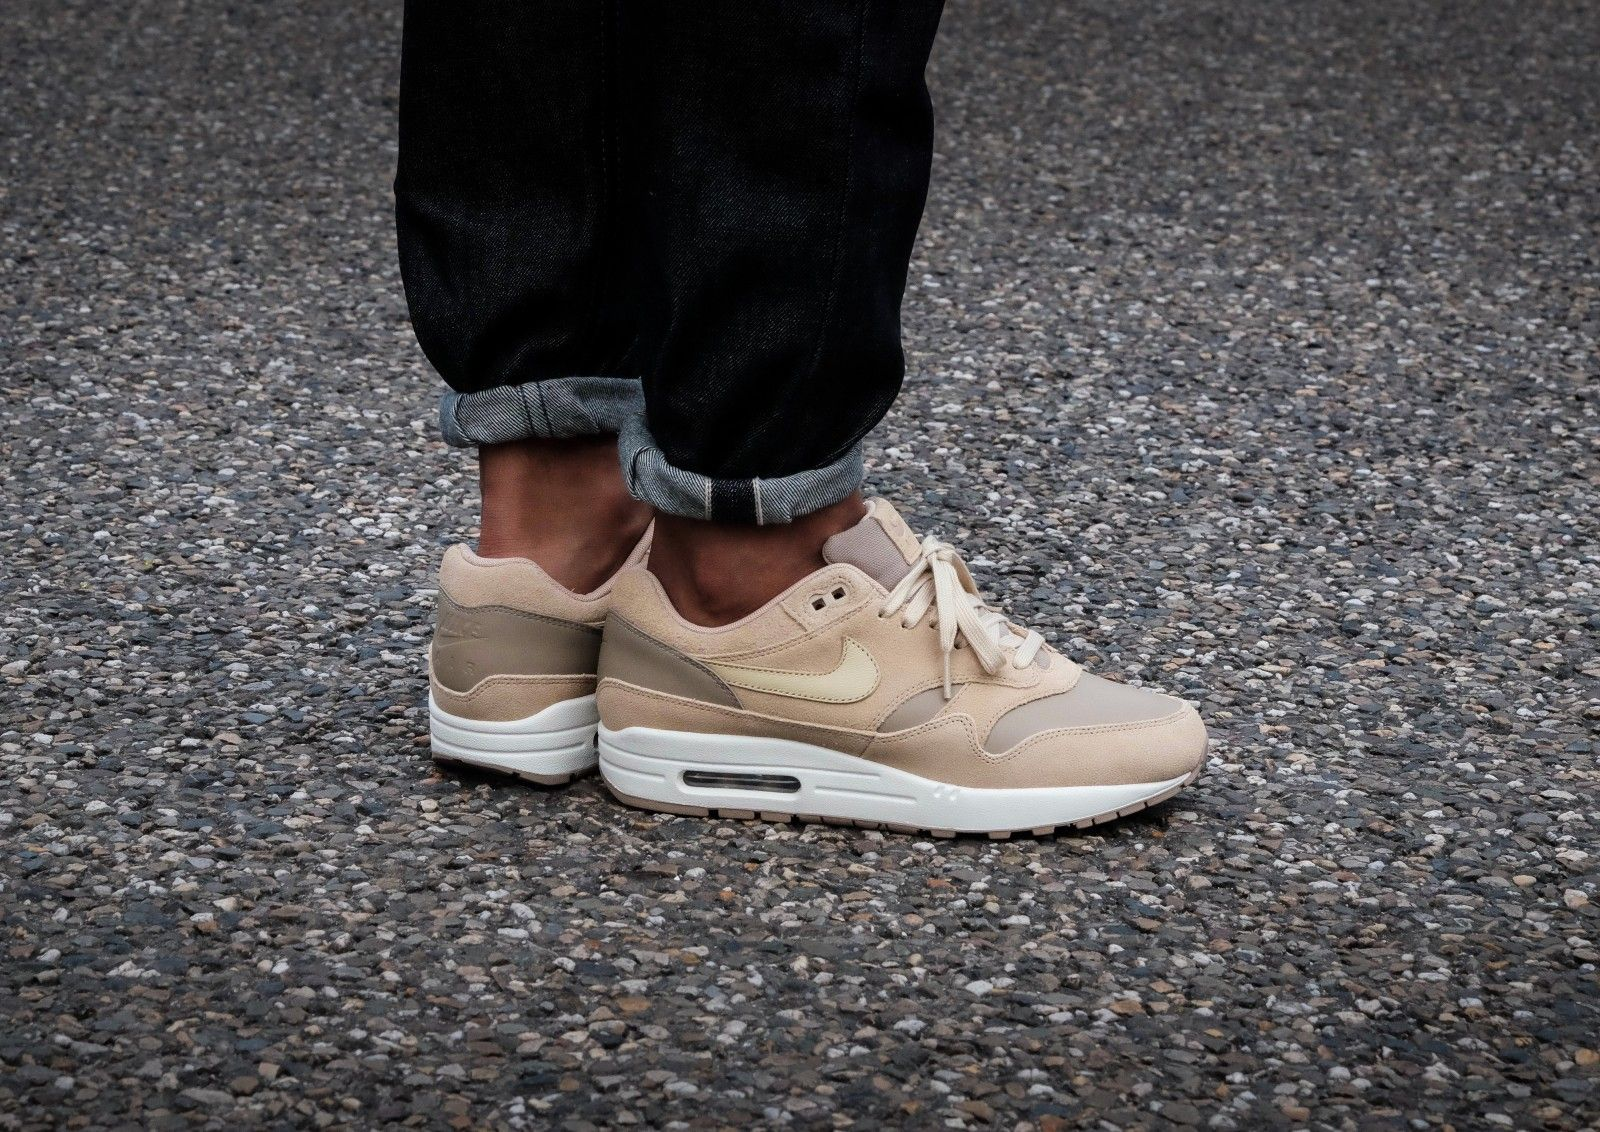 nike air max 1 leather premium khaki team gold & mushroom recipes